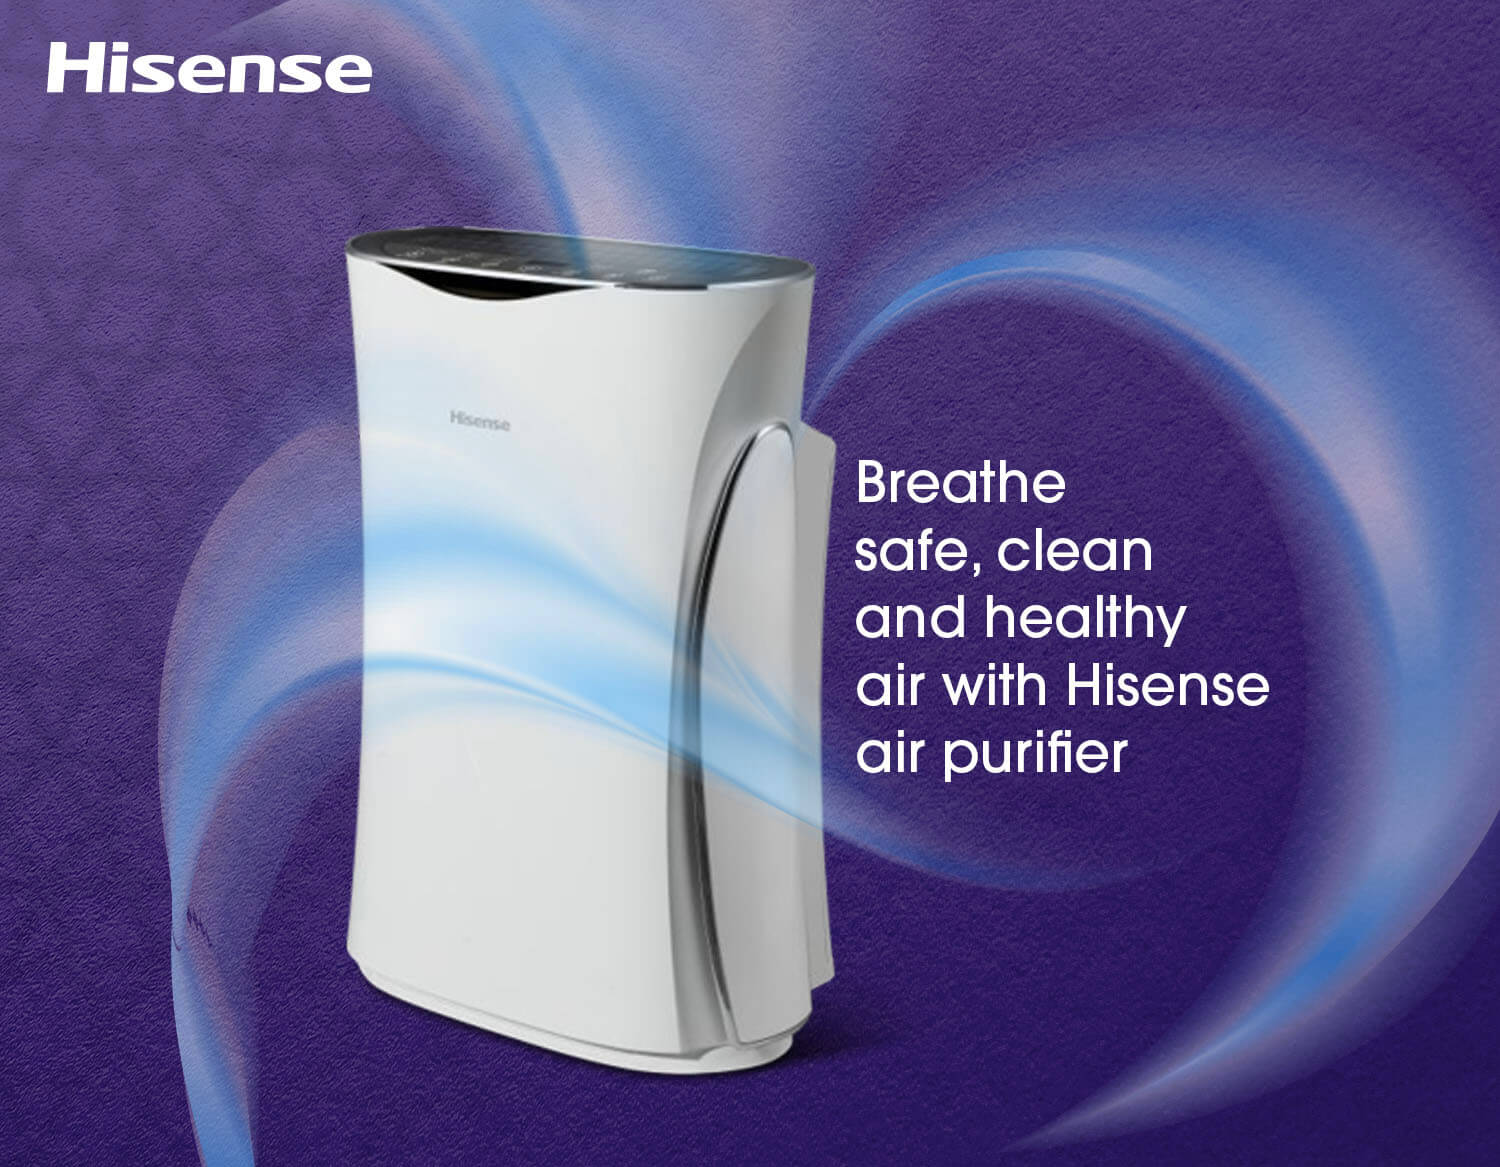 Buy Hisense Air purifier air filter  in kuwait online from Andalus Electronics Online Store in Kuwait